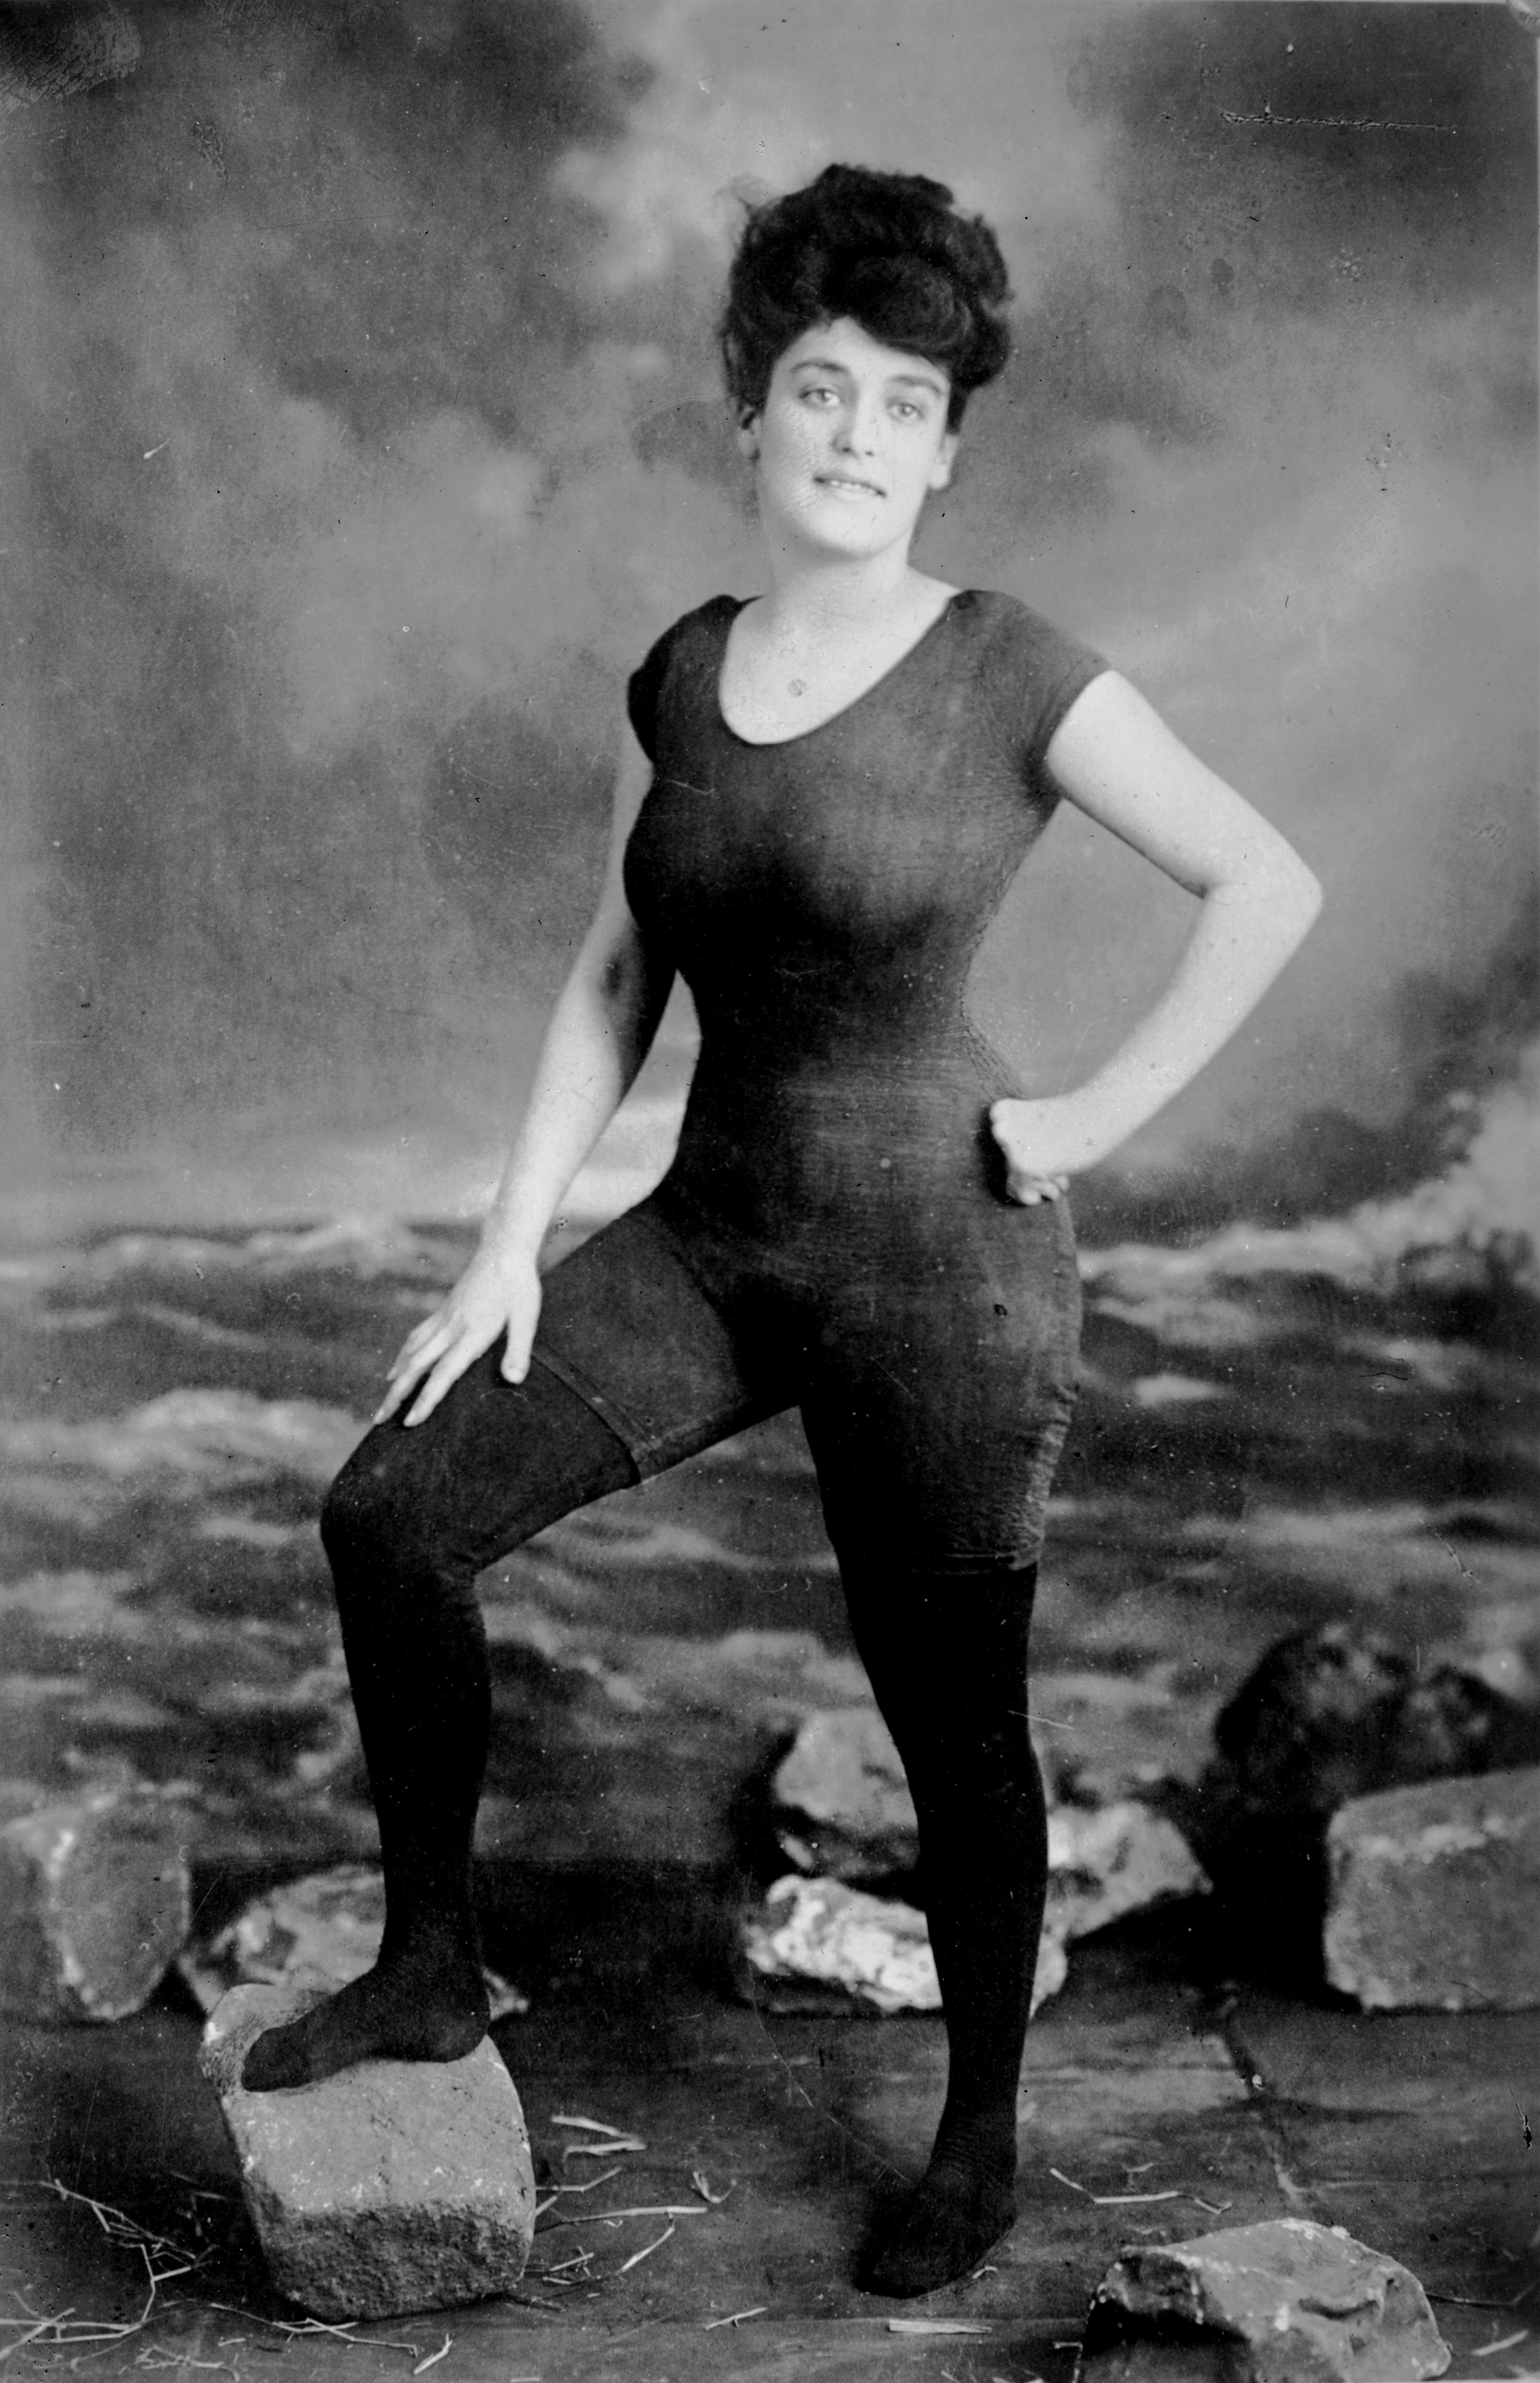 Annette Kellerman - A trailblazing figure of marathon swimming, women's empowerment and entertainment